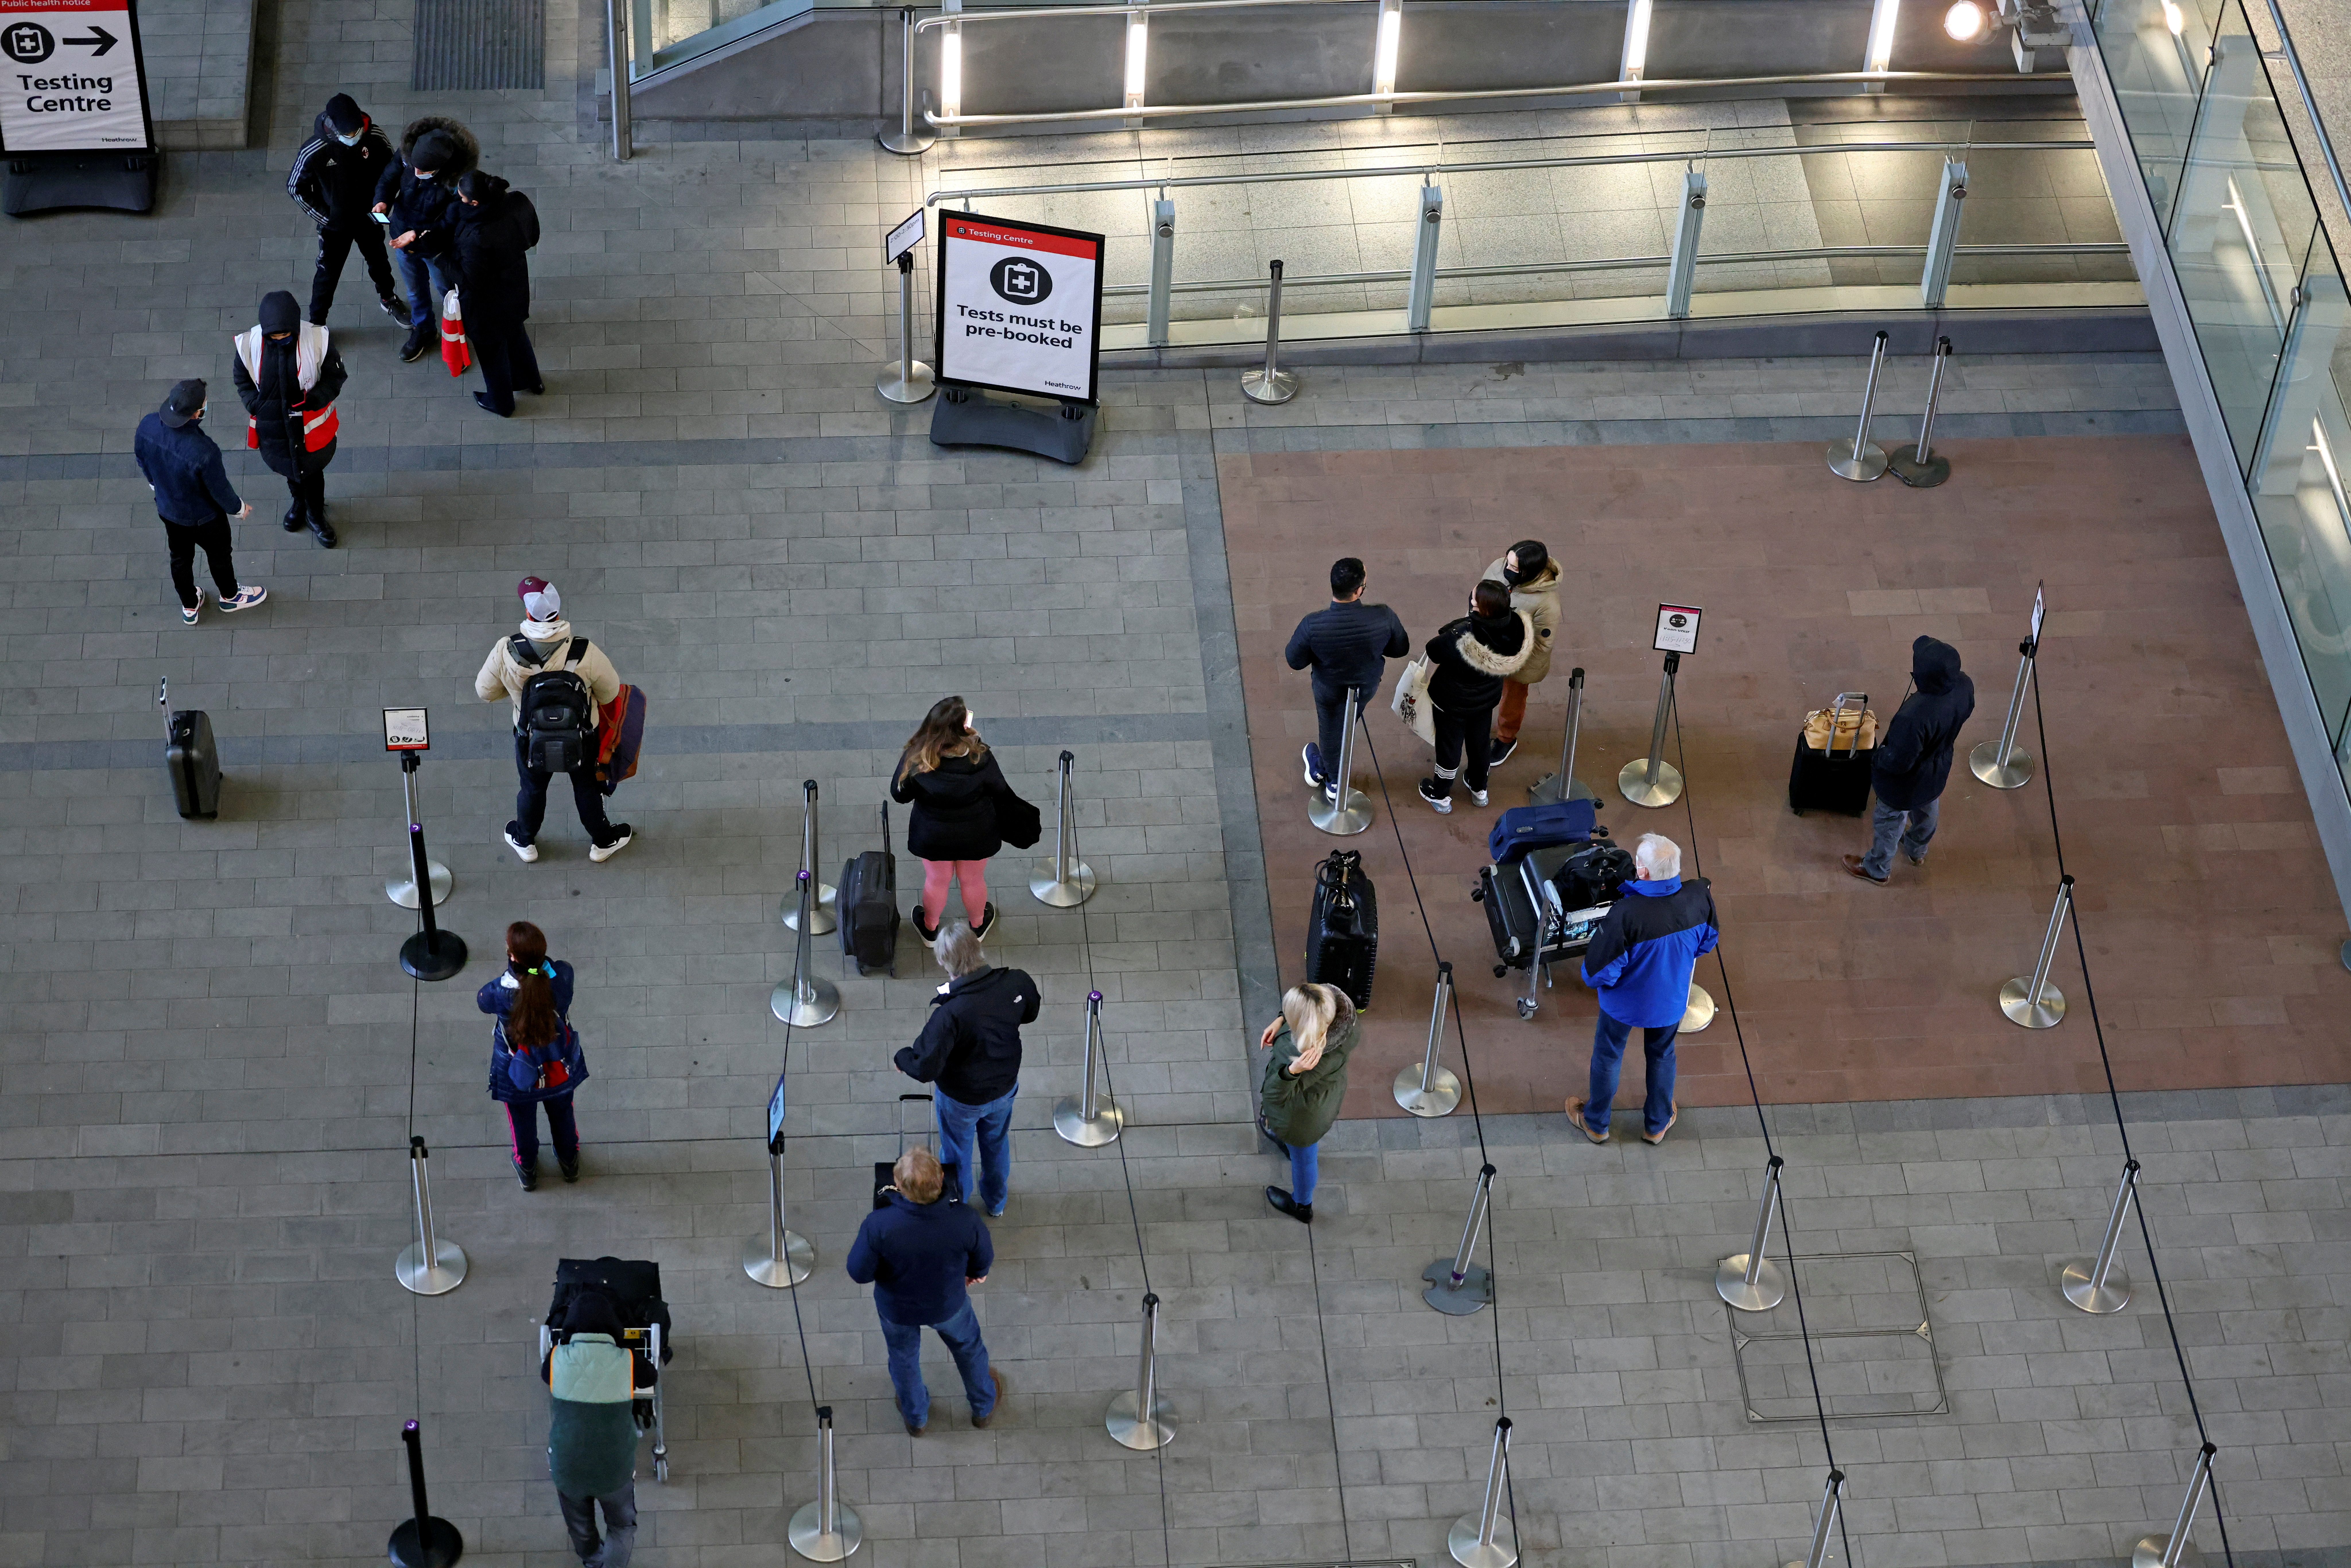 People queue for COVID-19 tests at a testing centre, as tighter rules for international travellers start, at terminal 2 of the Heathrow Airport, amid the spread of the coronavirus disease (COVID-19) pandemic, London, Britain, January 18, 2021. REUTERS/Henry Nicholls